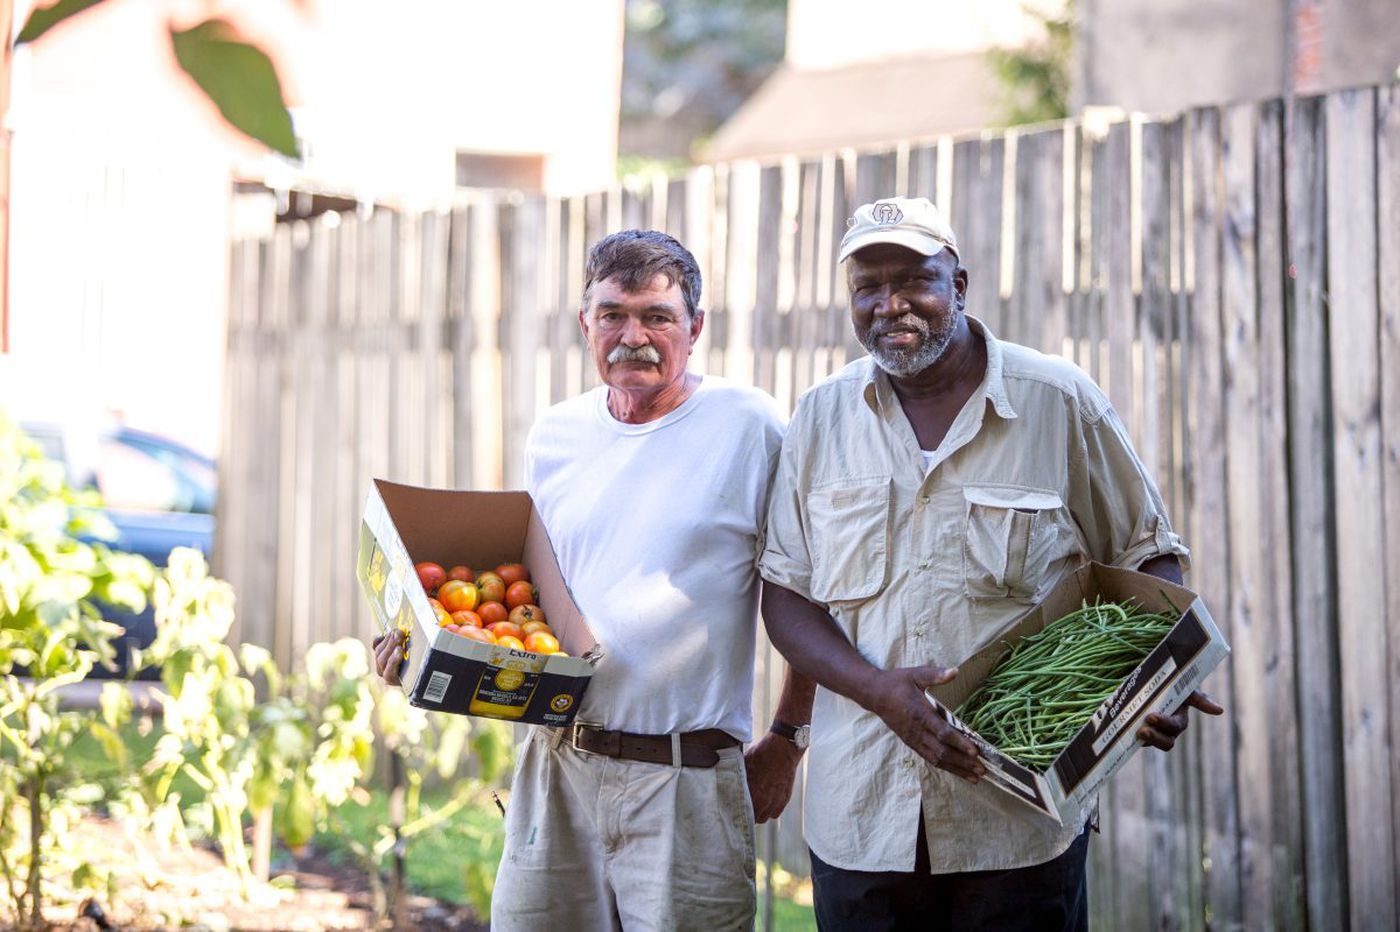 Philly's urban gardeners are under siege from gentrification. Here's what they're doing about it.